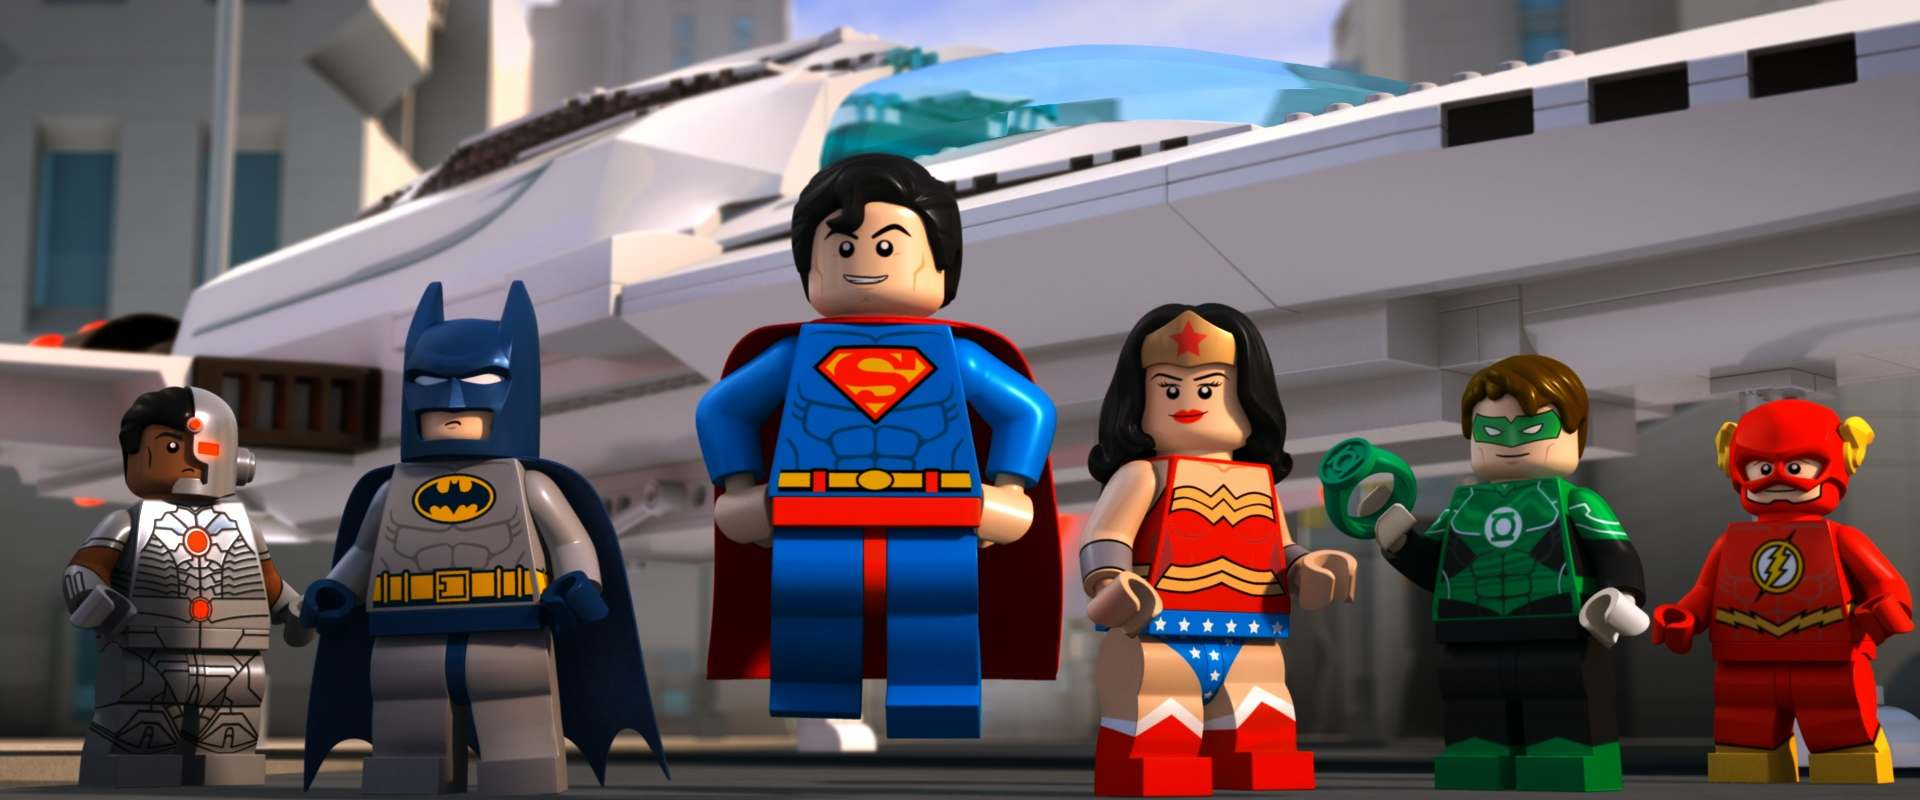 LEGO DC Super Heroes: Justice League - Attack of the Legion of Doom! background 2